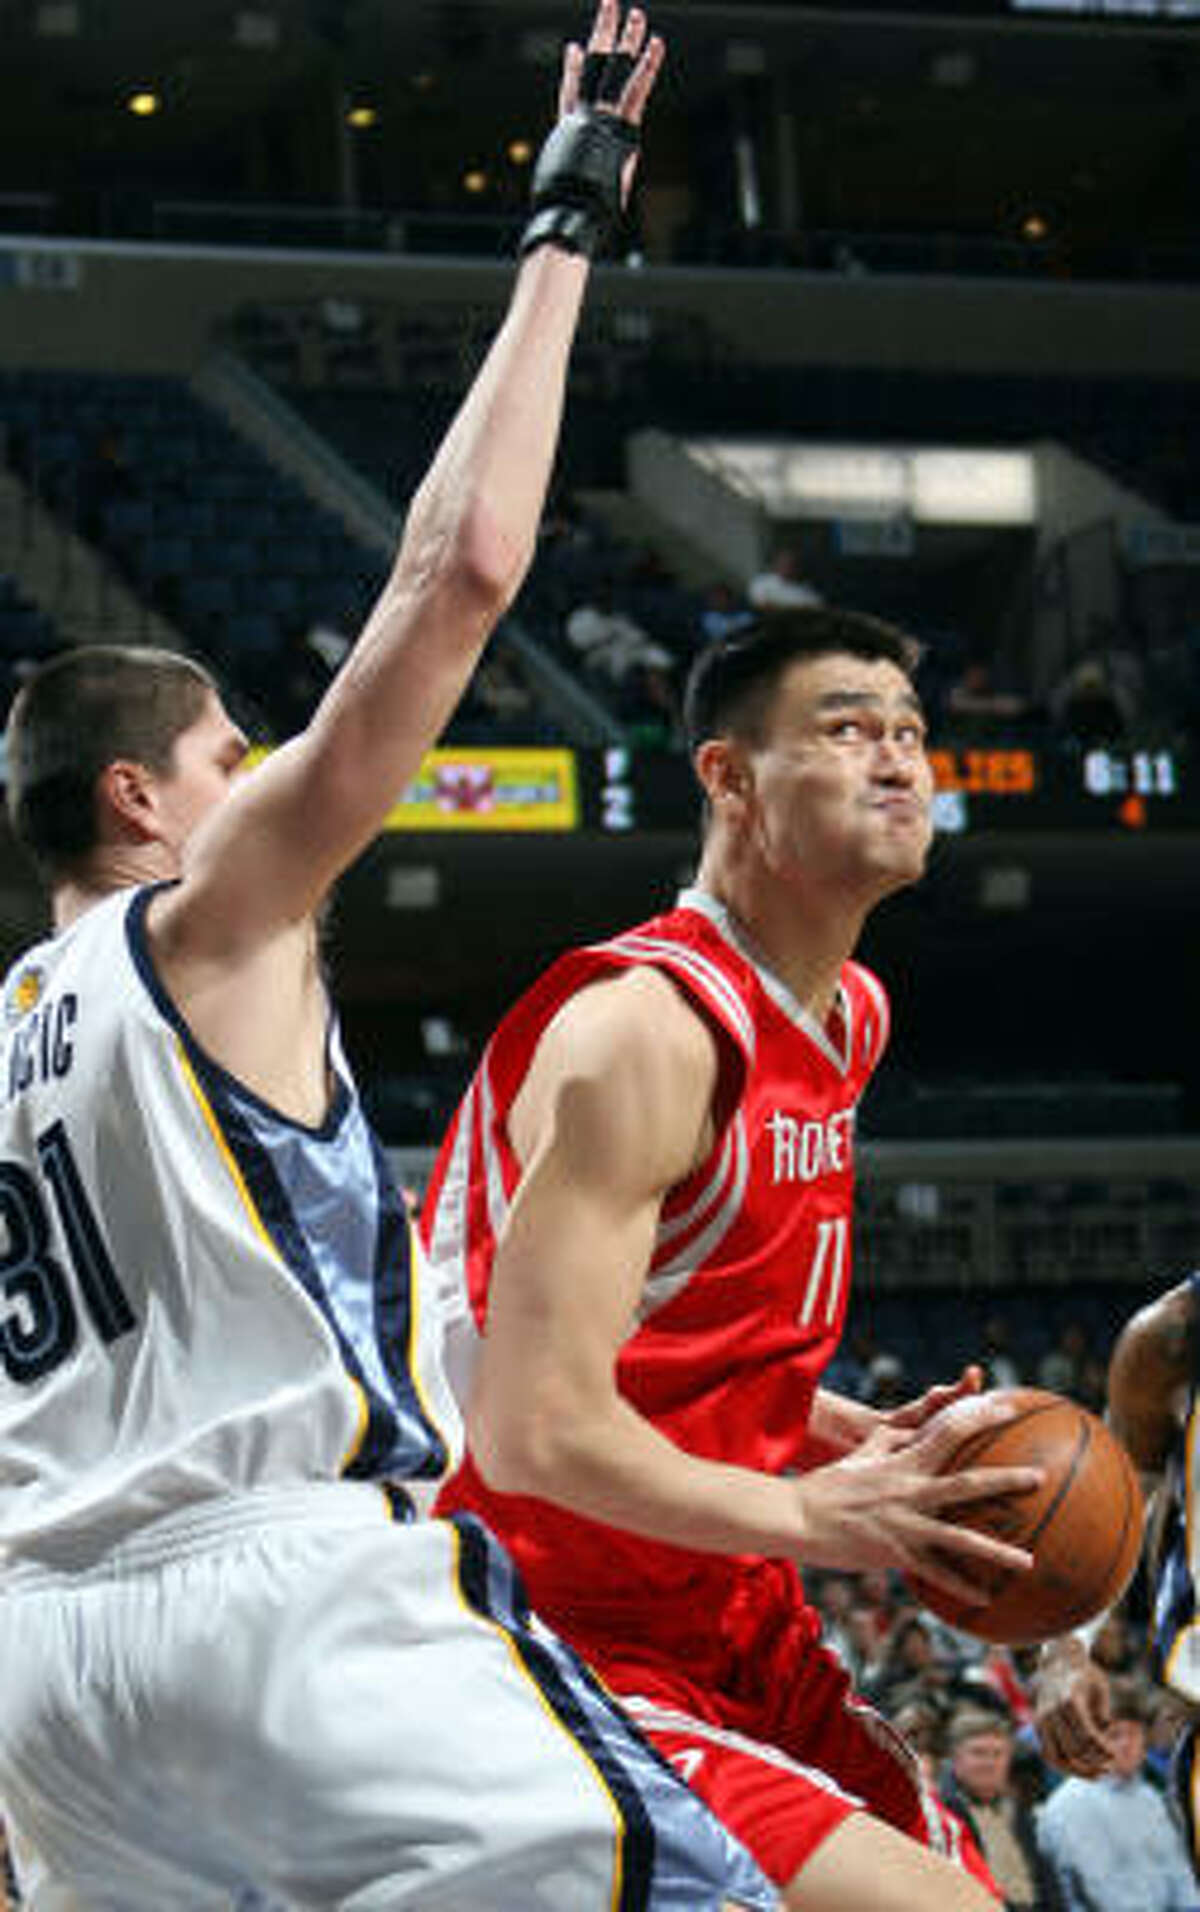 Yao Ming, center, shoots while being defended by Grizzlies forward Darko Milicic in the fourth quarter.